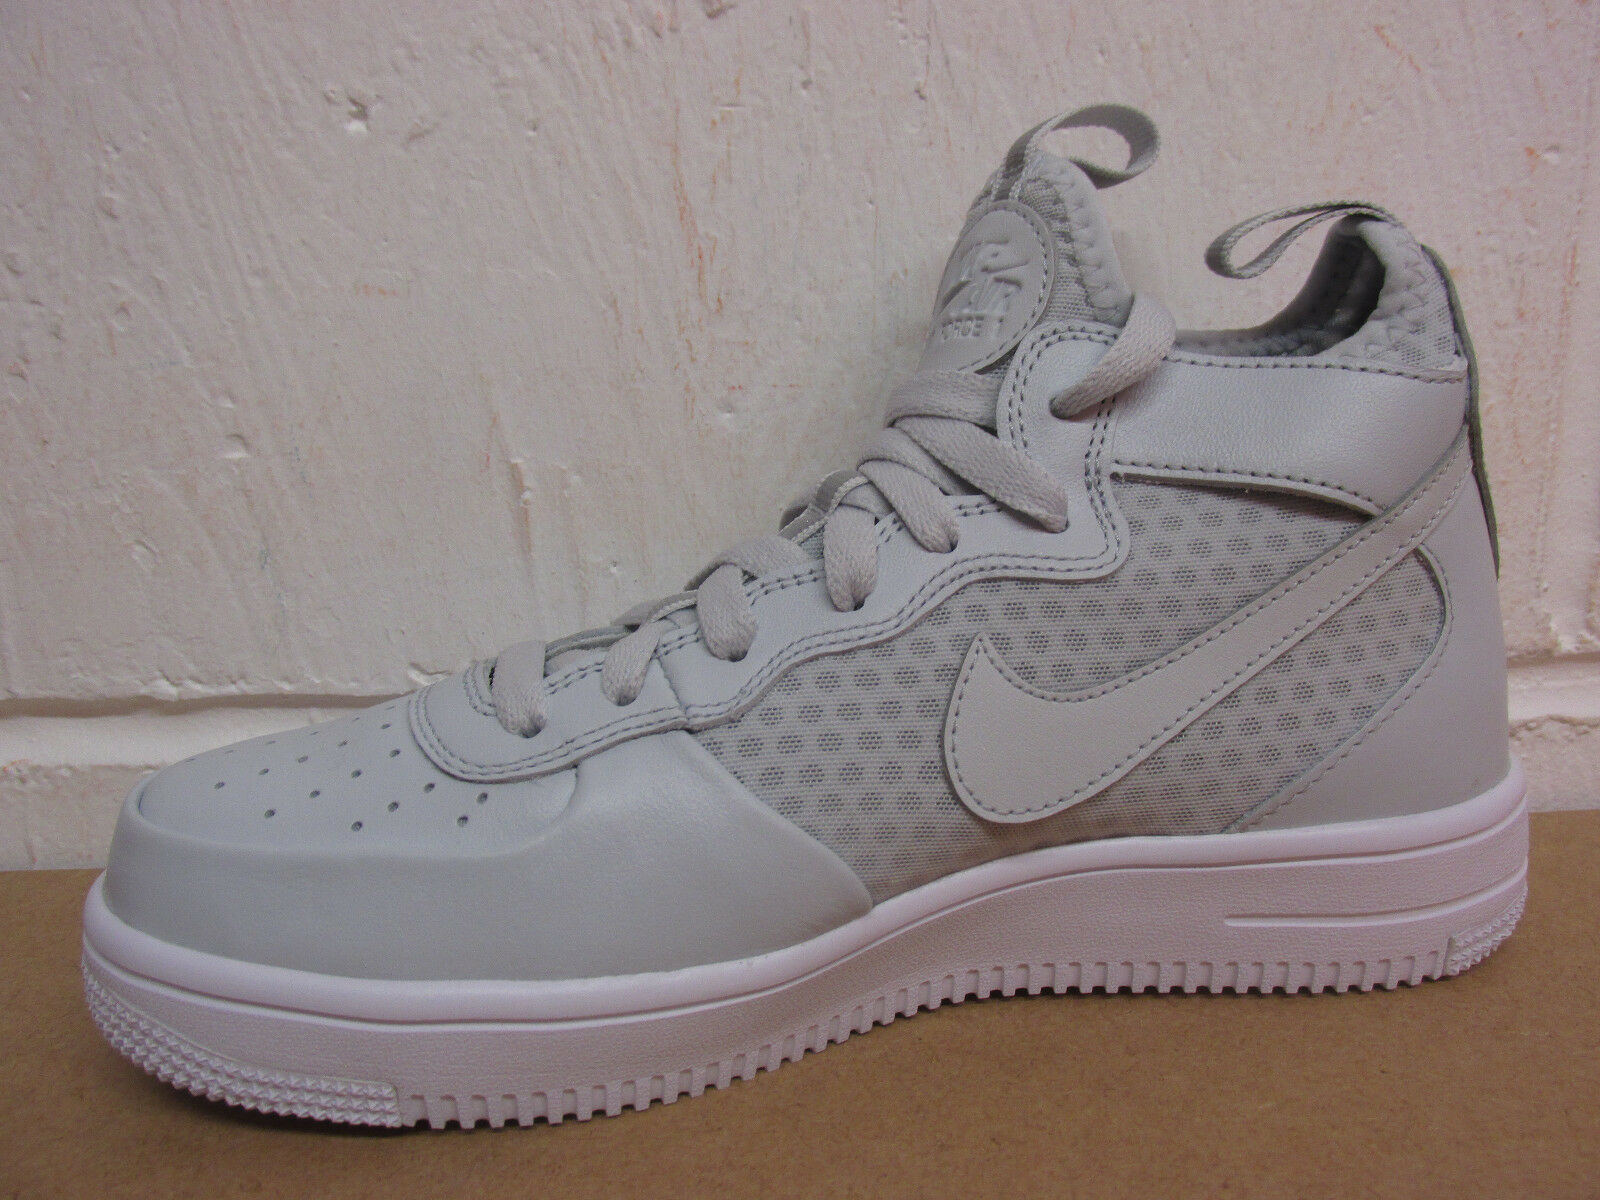 Nike Air GS Force 1 Ultraforce Mid GS Air Hi Top Trainers 869945 002 Sneakers Schuhes a3e529